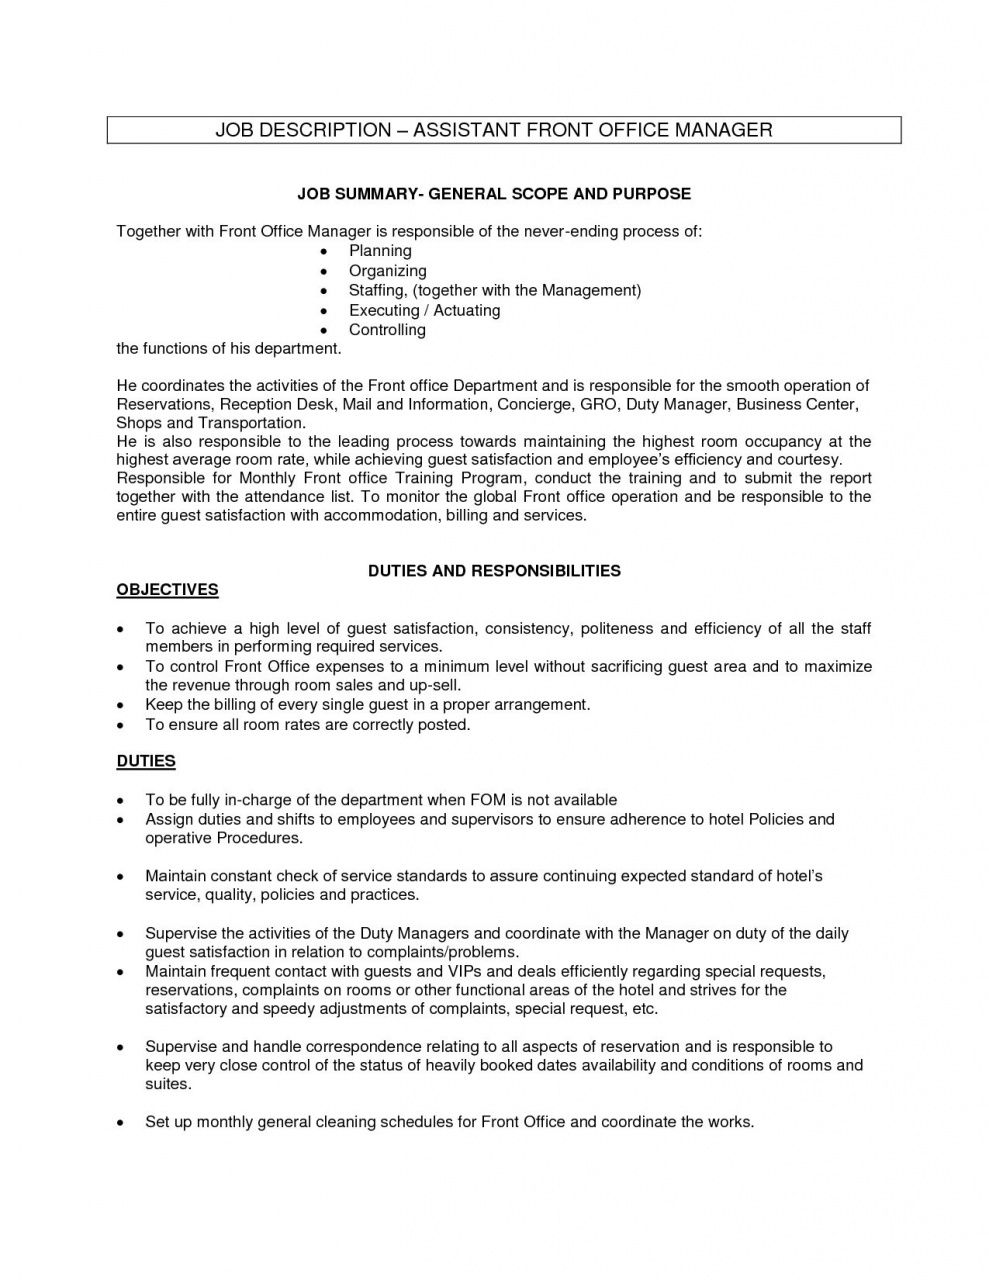 Hotel Front Desk Job Description In 2020 Office Assistant Job Description Office Assistant Jobs Receptionist Jobs